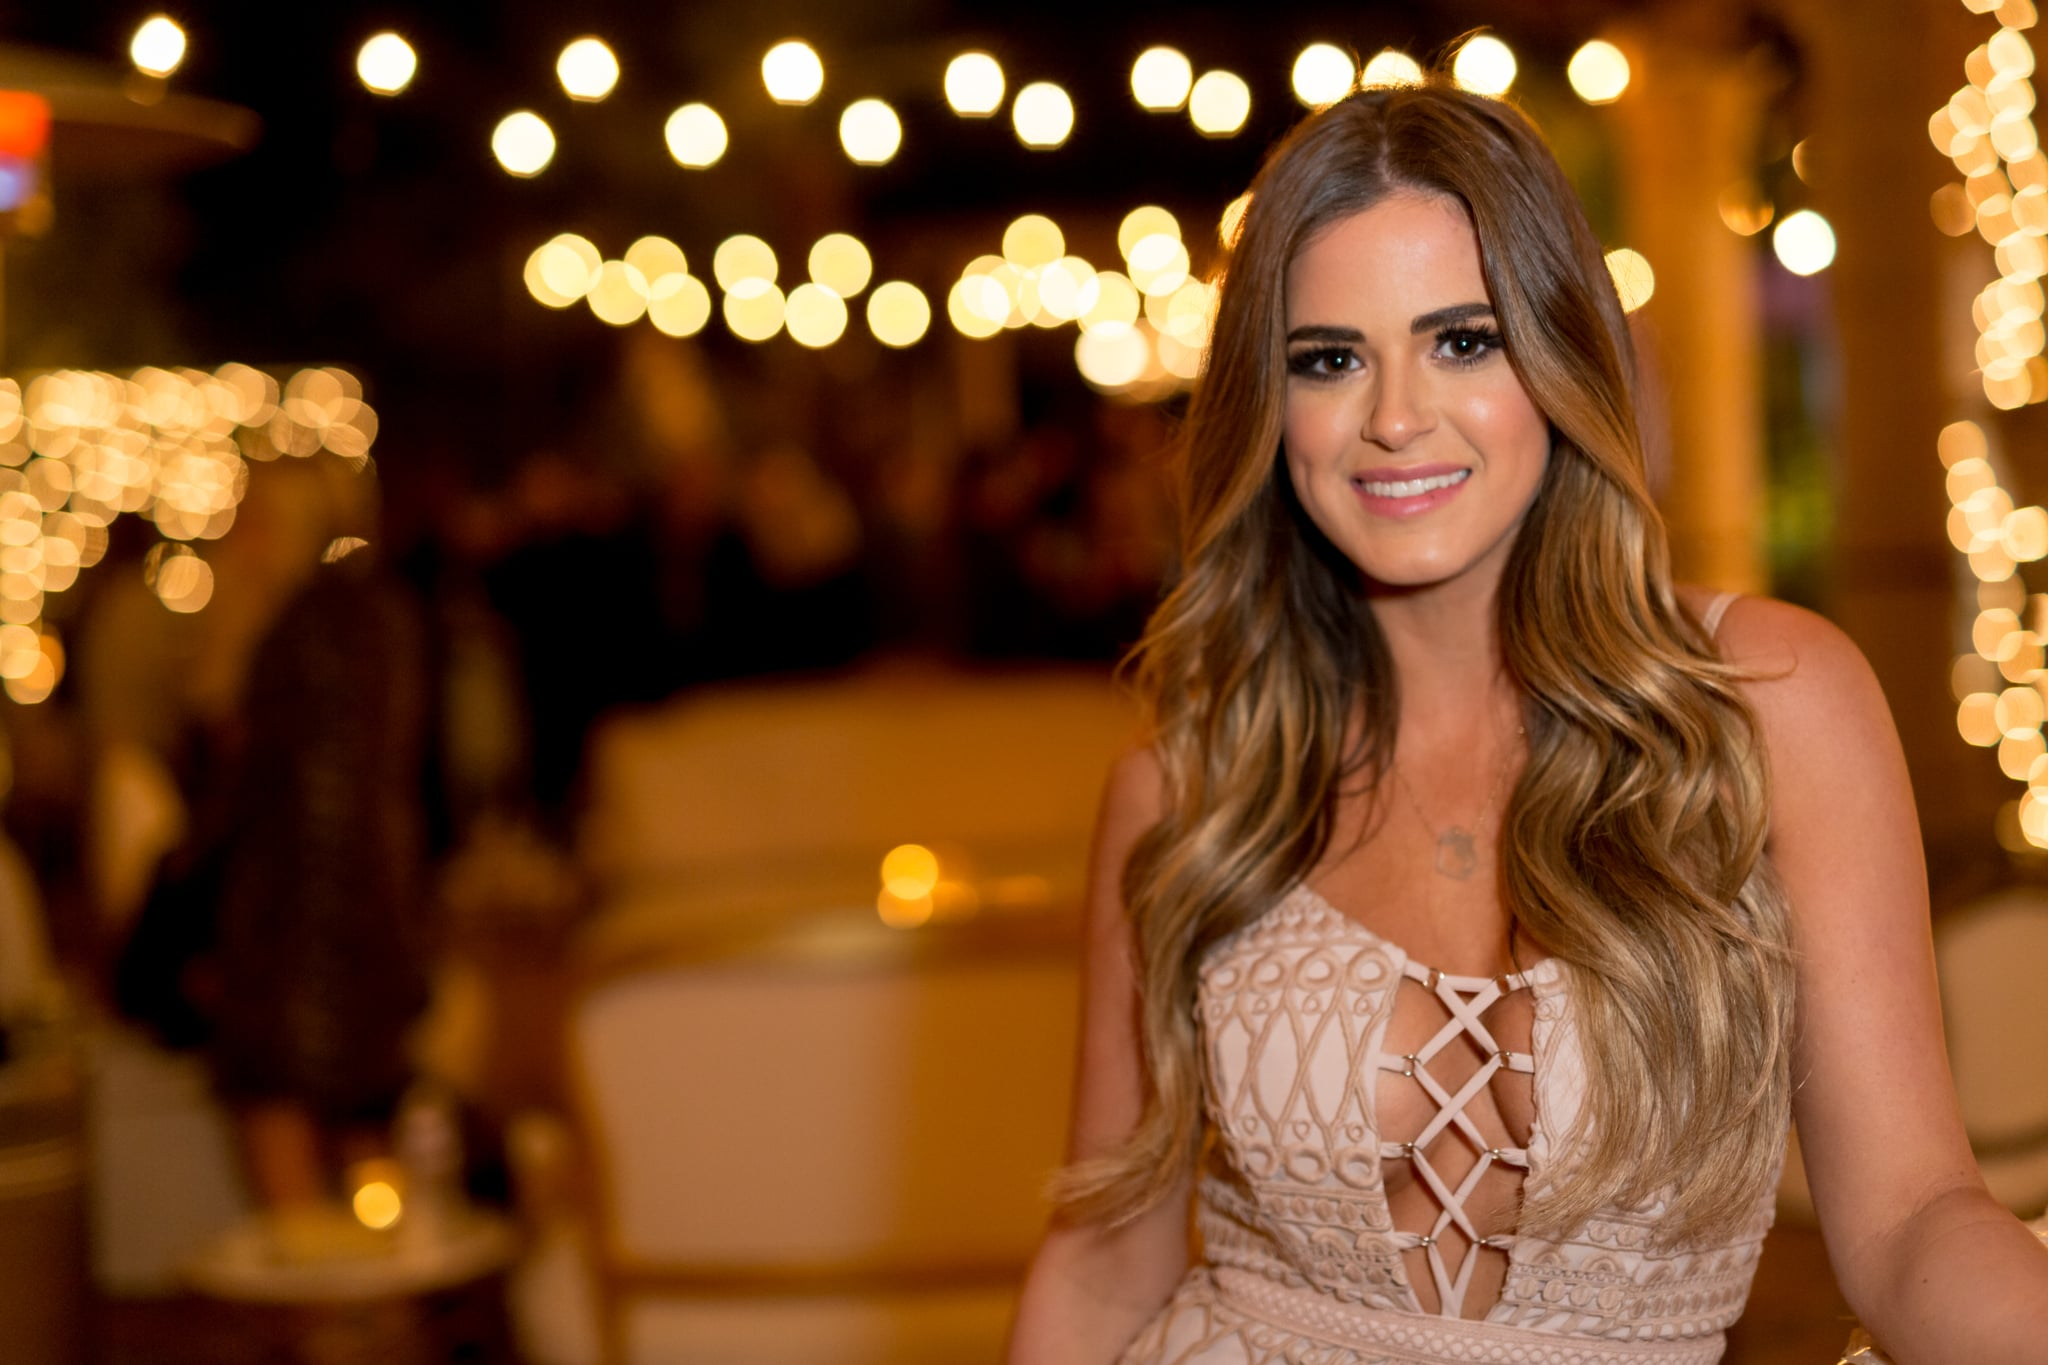 LOS ANGELES, CA - DECEMBER 05:  JoJo Fletcher attends the Becca Tilley's Blog And YouTube Launch Party at The Bachelor Mansion on December 5, 2016 in Los Angeles, California.  (Photo by Greg Doherty/Getty Images)